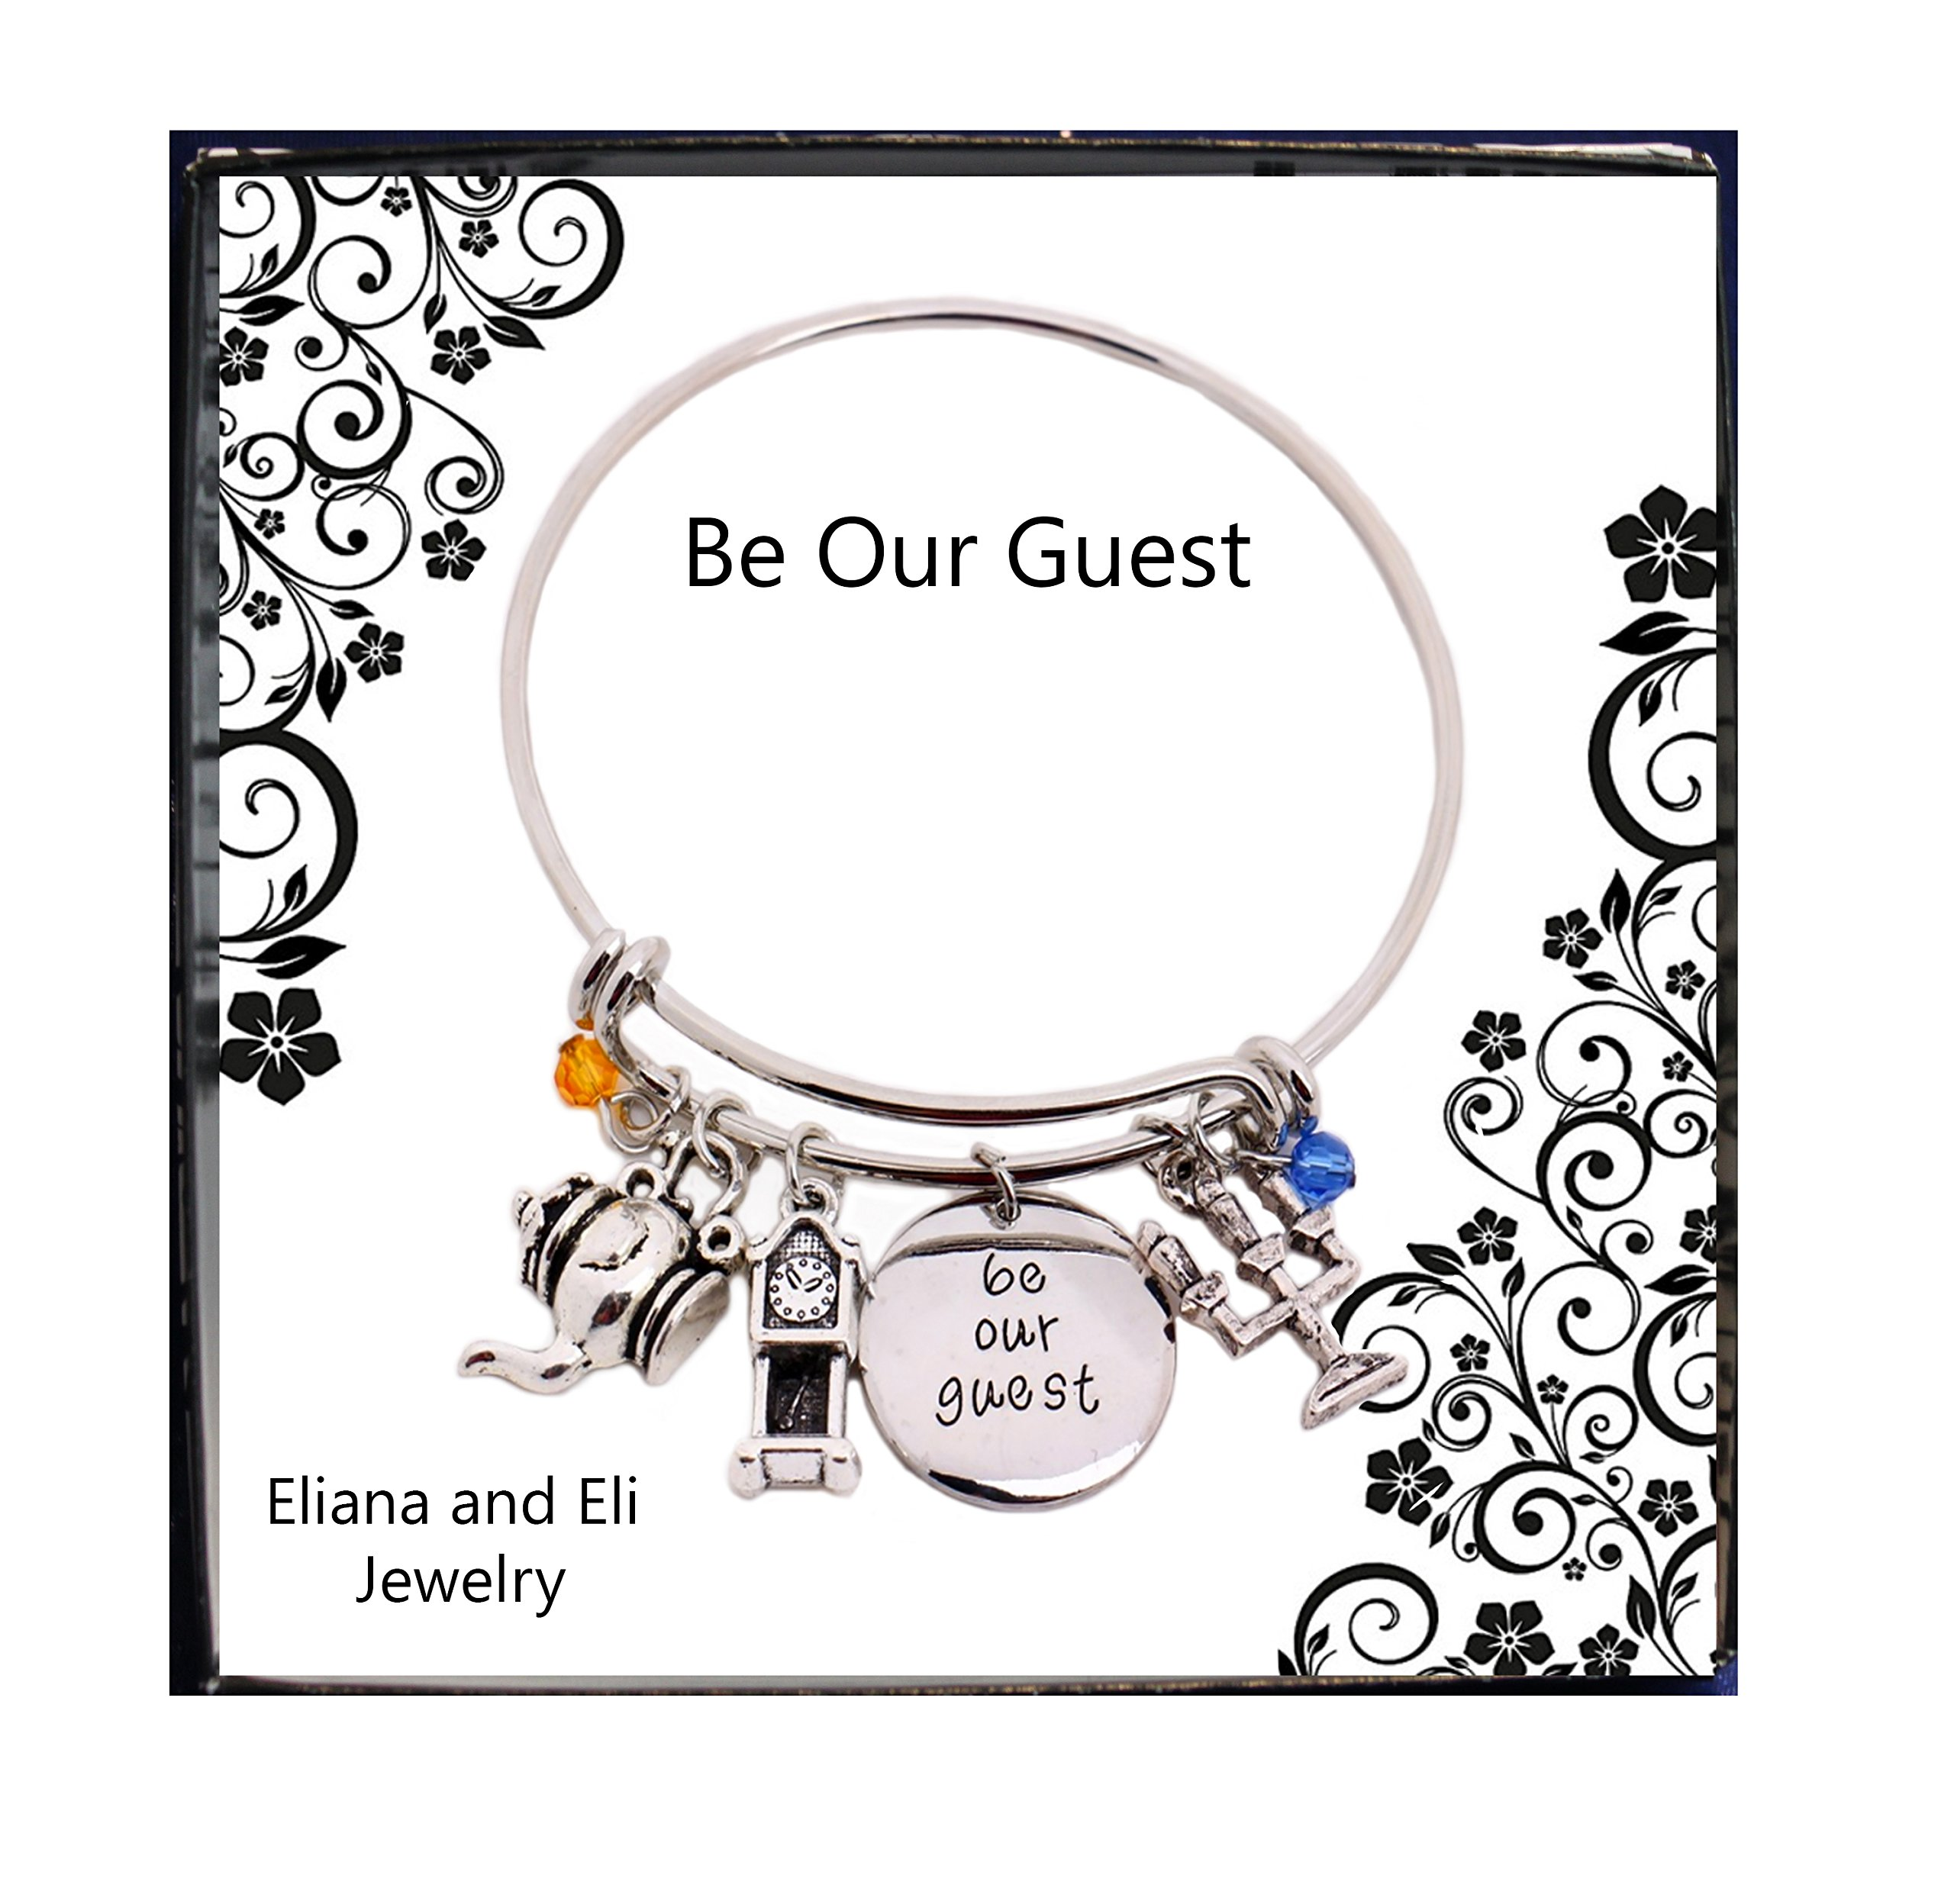 Beauty and the Beast Message Expandable Silver Bangle Bracelet Be Our Guest Pendant with Pendulum,Candlestick Charms Bangle Bracelet for Halloween Disney Mommy & Me Stainless Steel